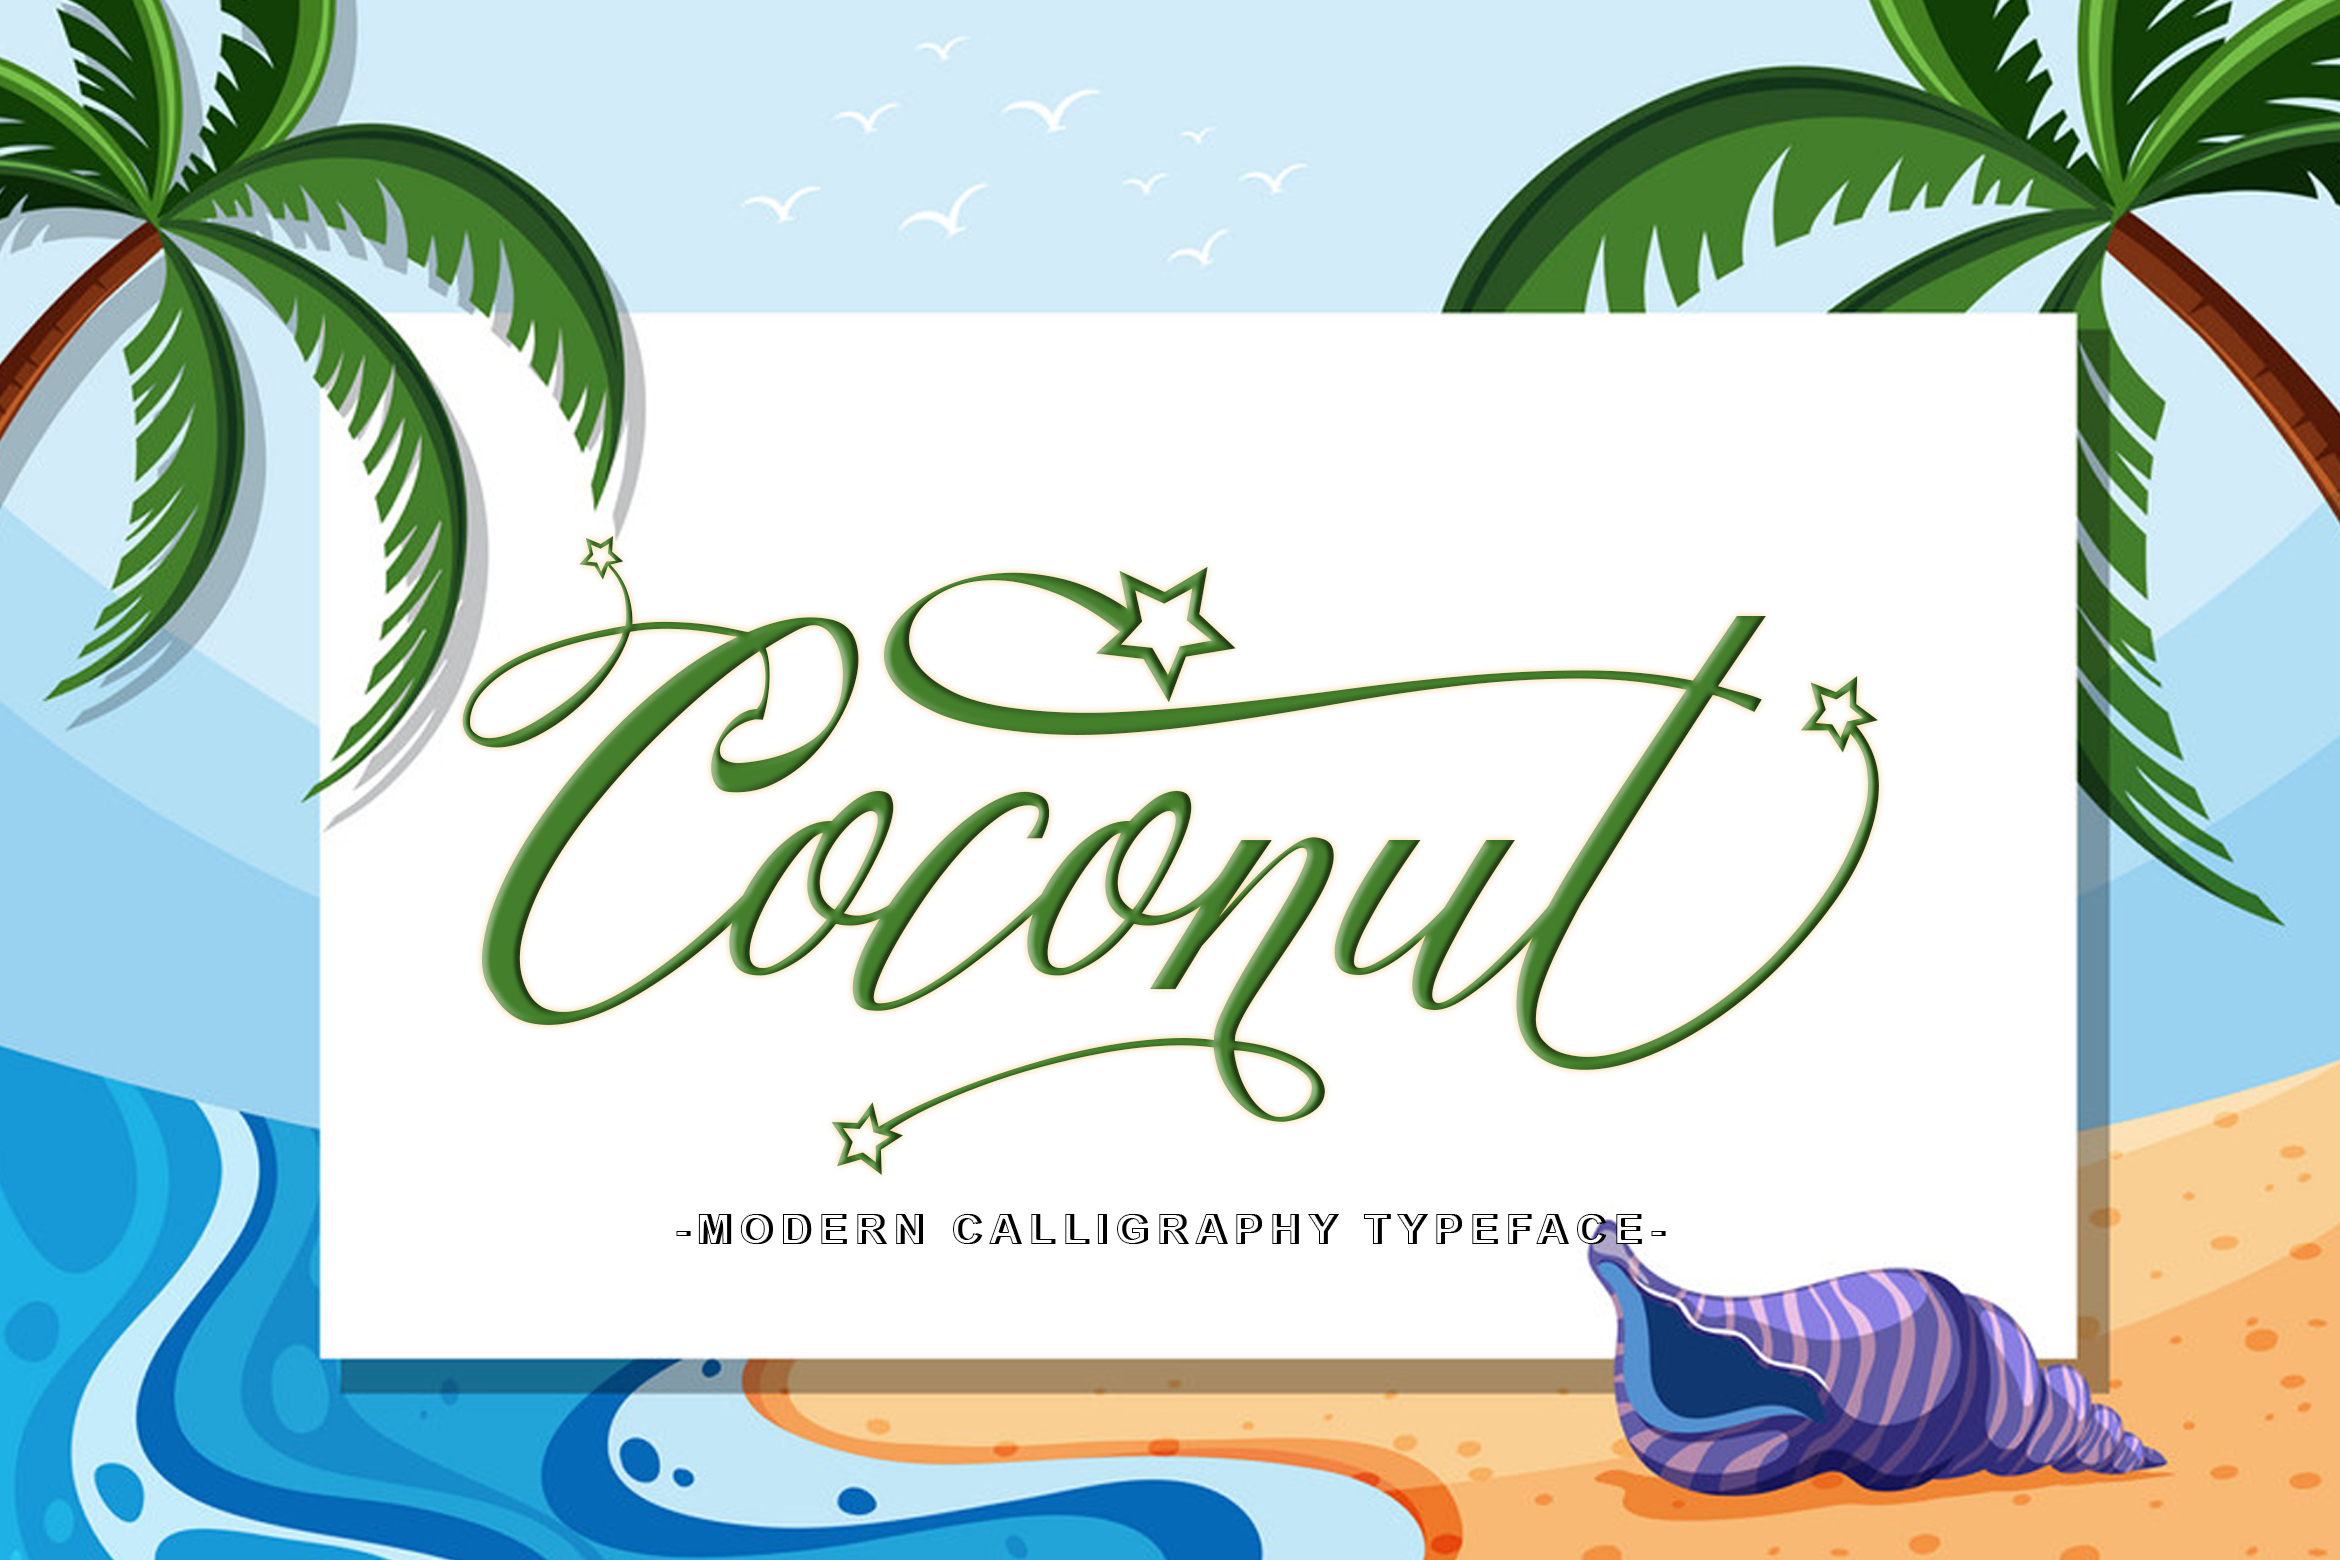 Download Free Coconut Script Font By Leparte Studio Creative Fabrica for Cricut Explore, Silhouette and other cutting machines.